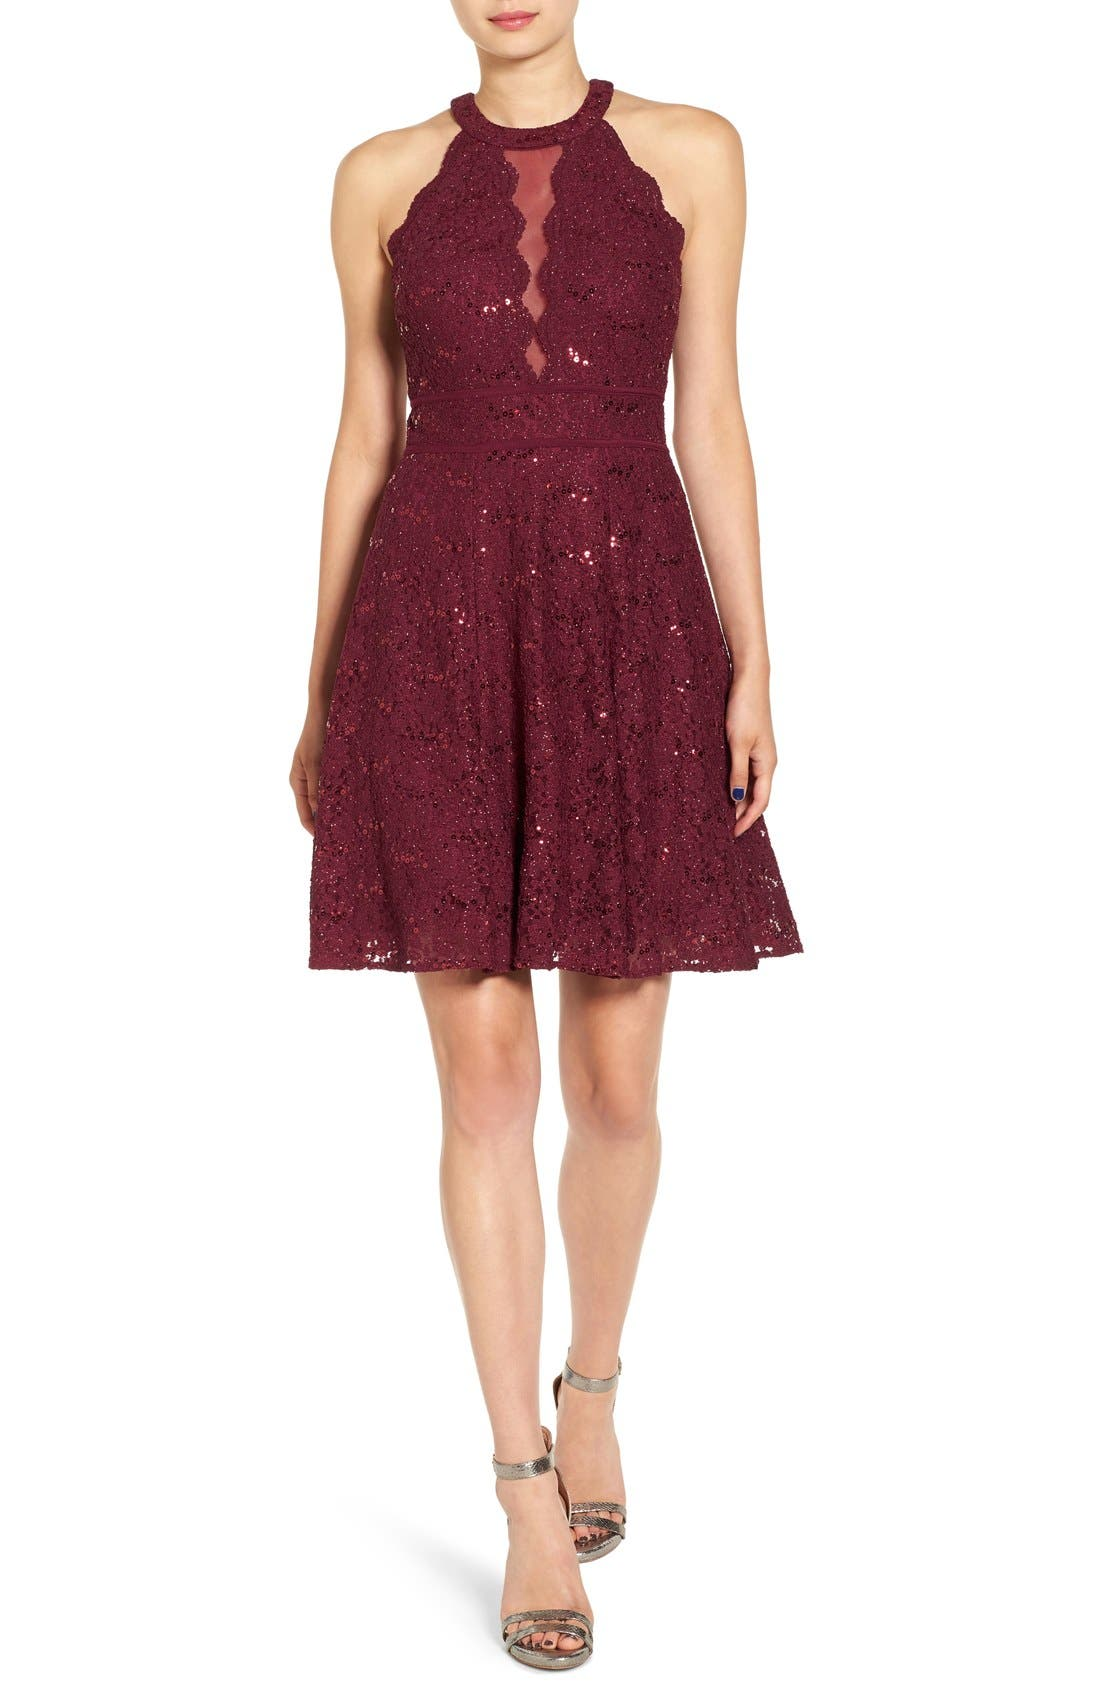 Alternate Image 1 Selected - Morgan & Co. Embellished High Neck Skater Dress